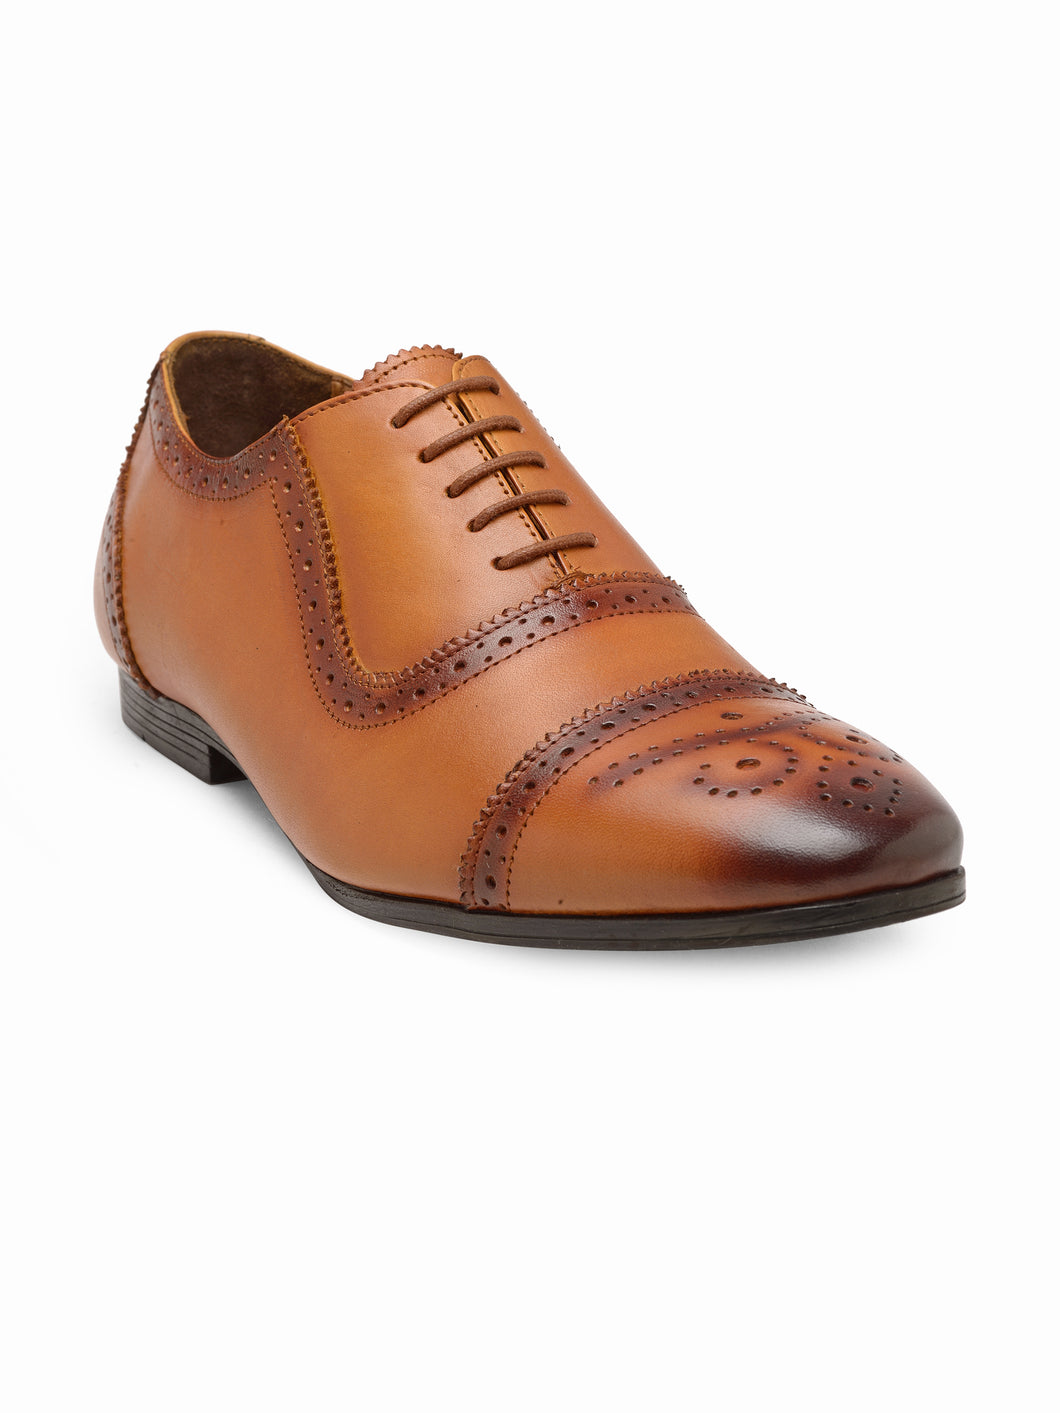 Teakwood Genuine Leathers Men Tan  Formal Oxfords Shoes